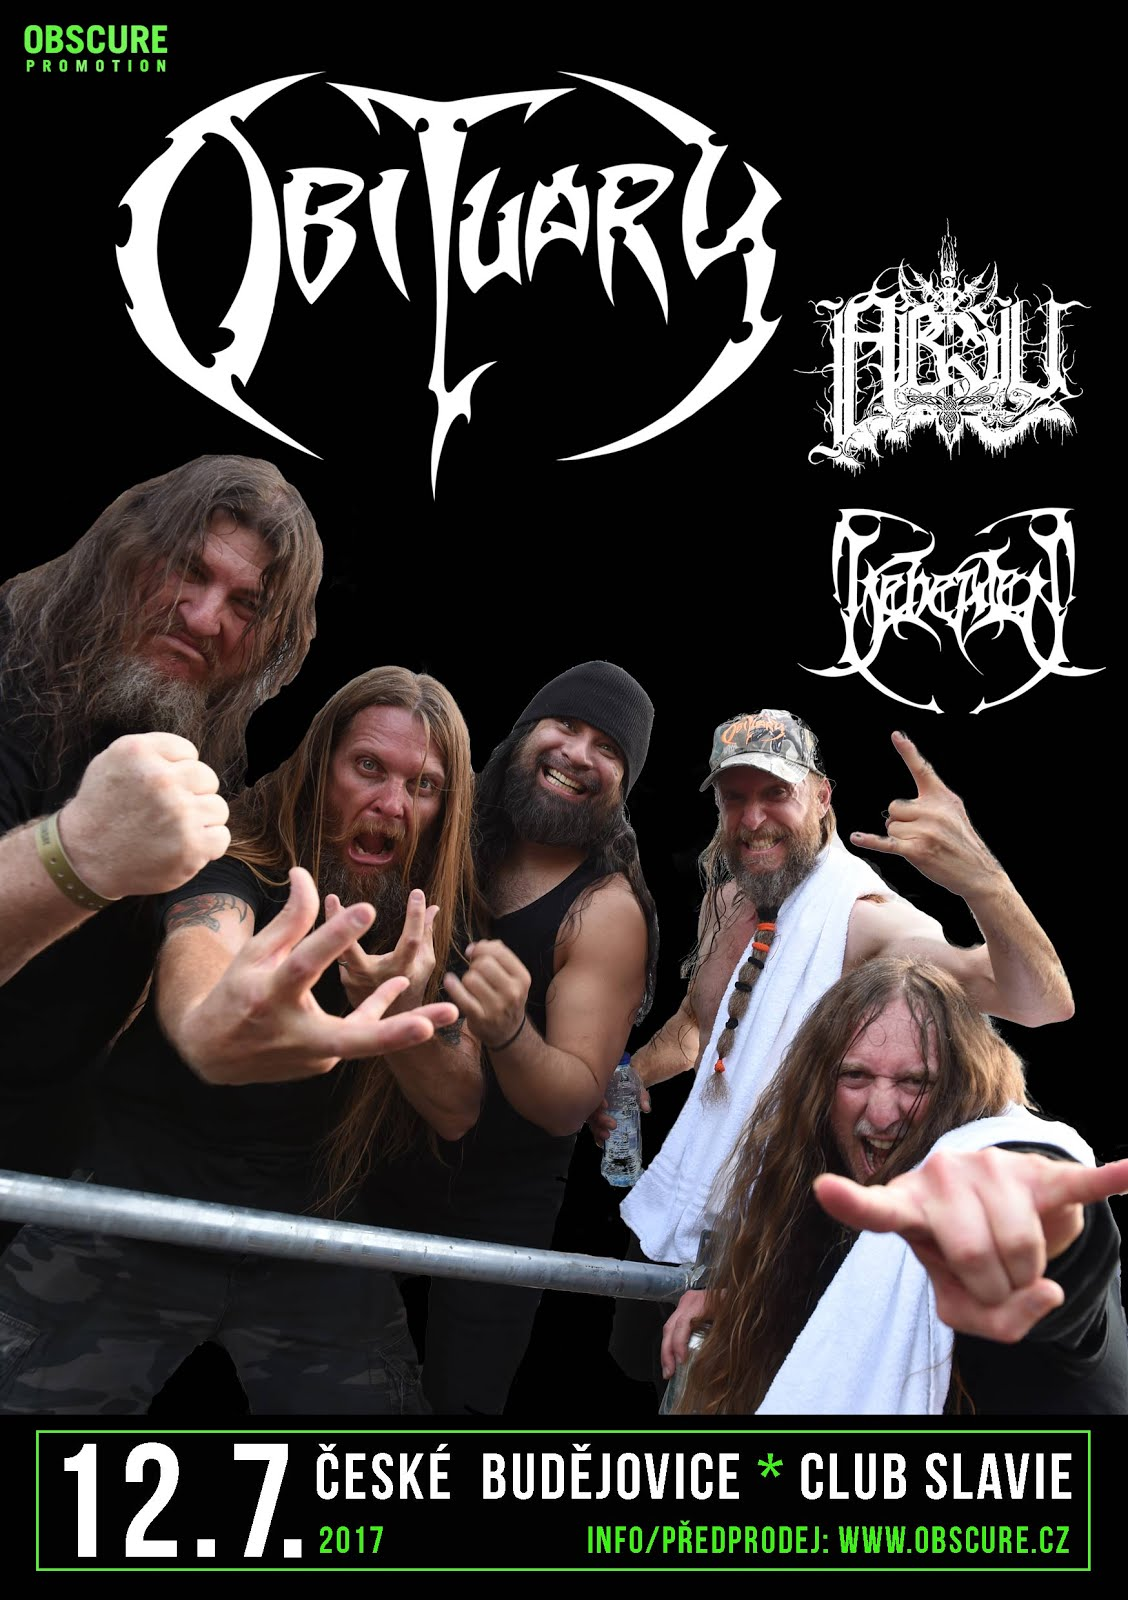 12. 7. 2017 - OBITUARY, ABSU, BEHEADED!